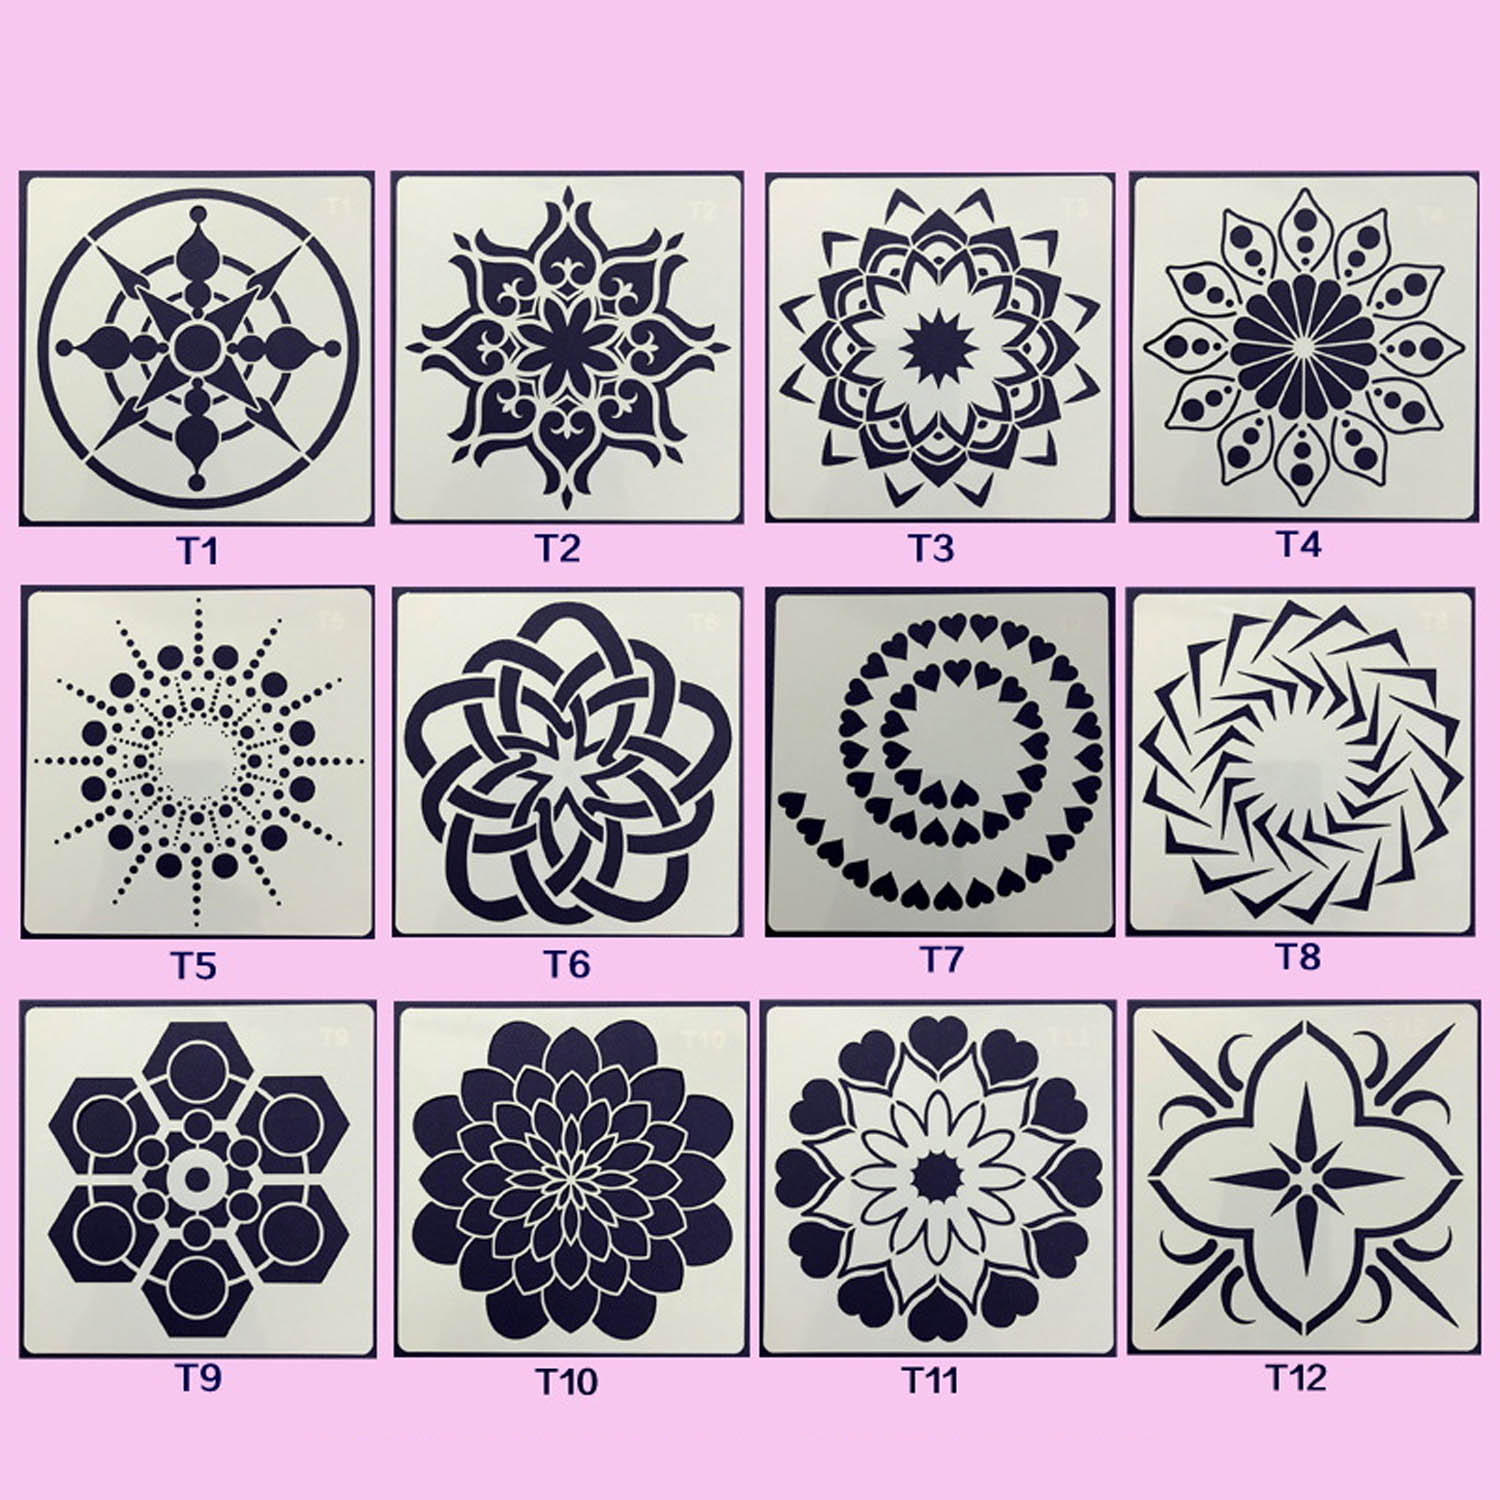 12pcs Mandala Dotting Tools Templates Stencil Set For DIY Painting Drawing Drafting Art Craft Projects